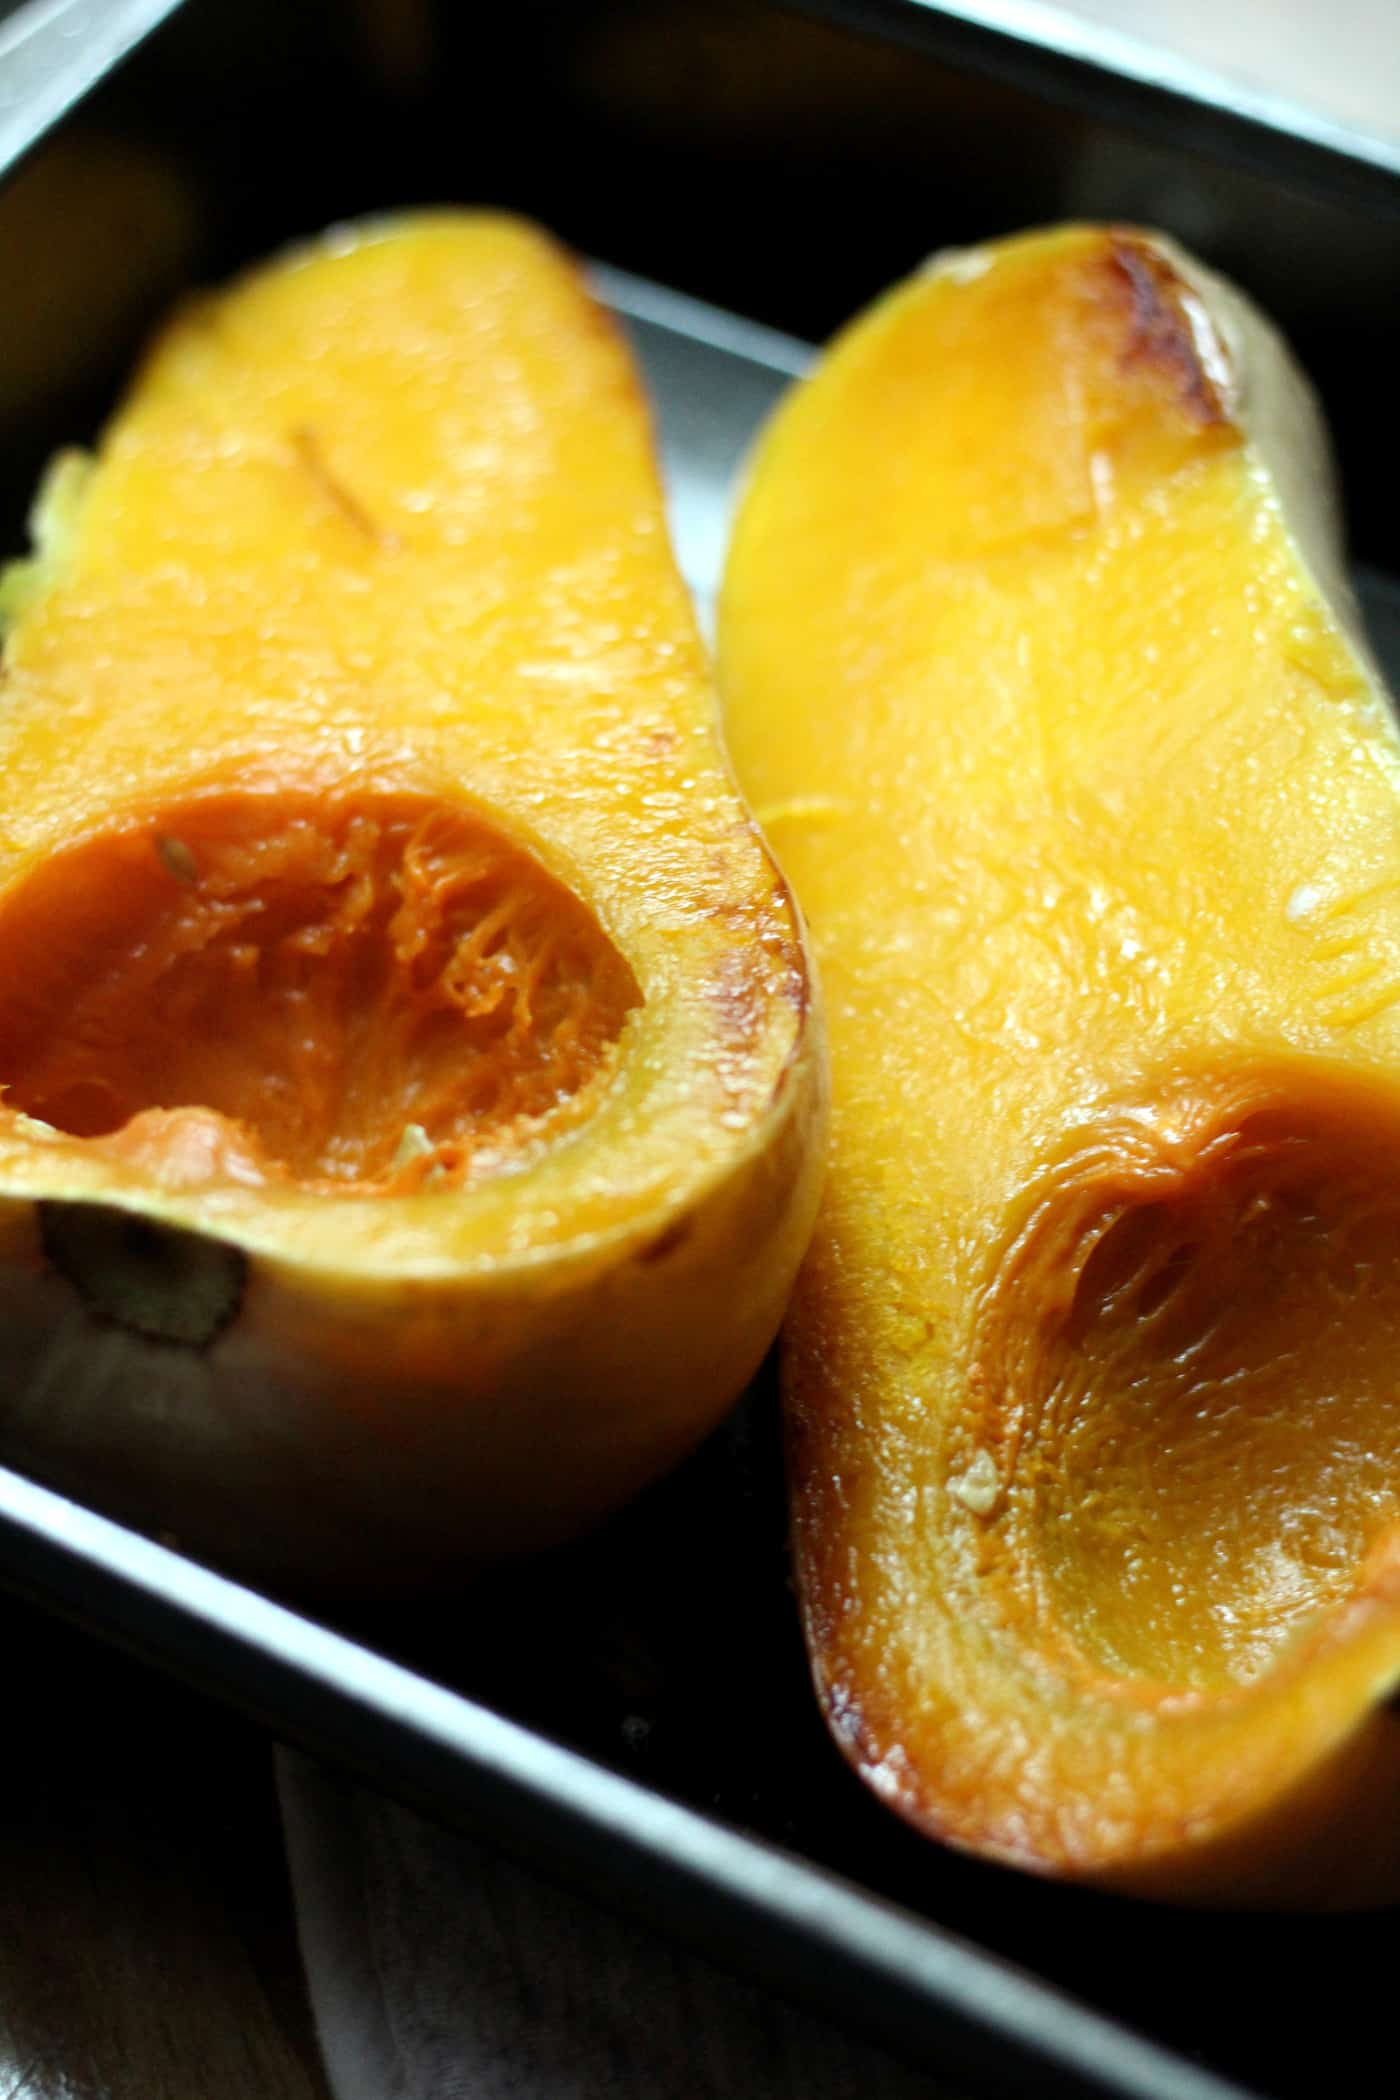 How-To: Roasting Butternut Squash